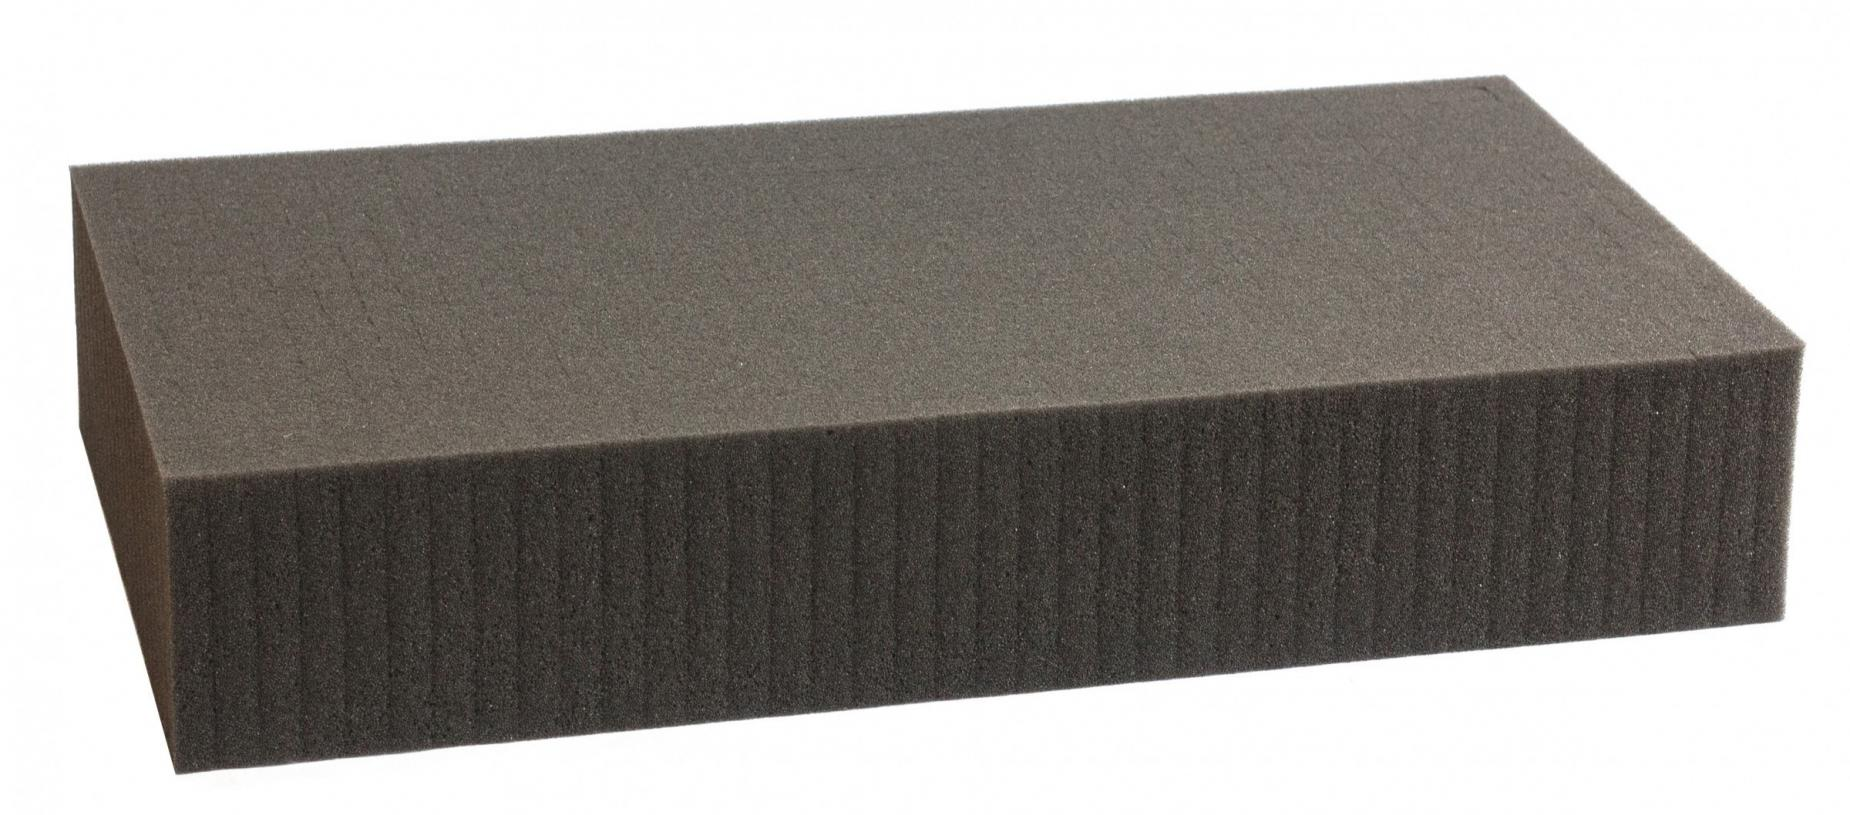 850 mm x 450 mm x 90 mm - Raster 15 mm - Pick and Pluck / Pre-Cubed foam tray